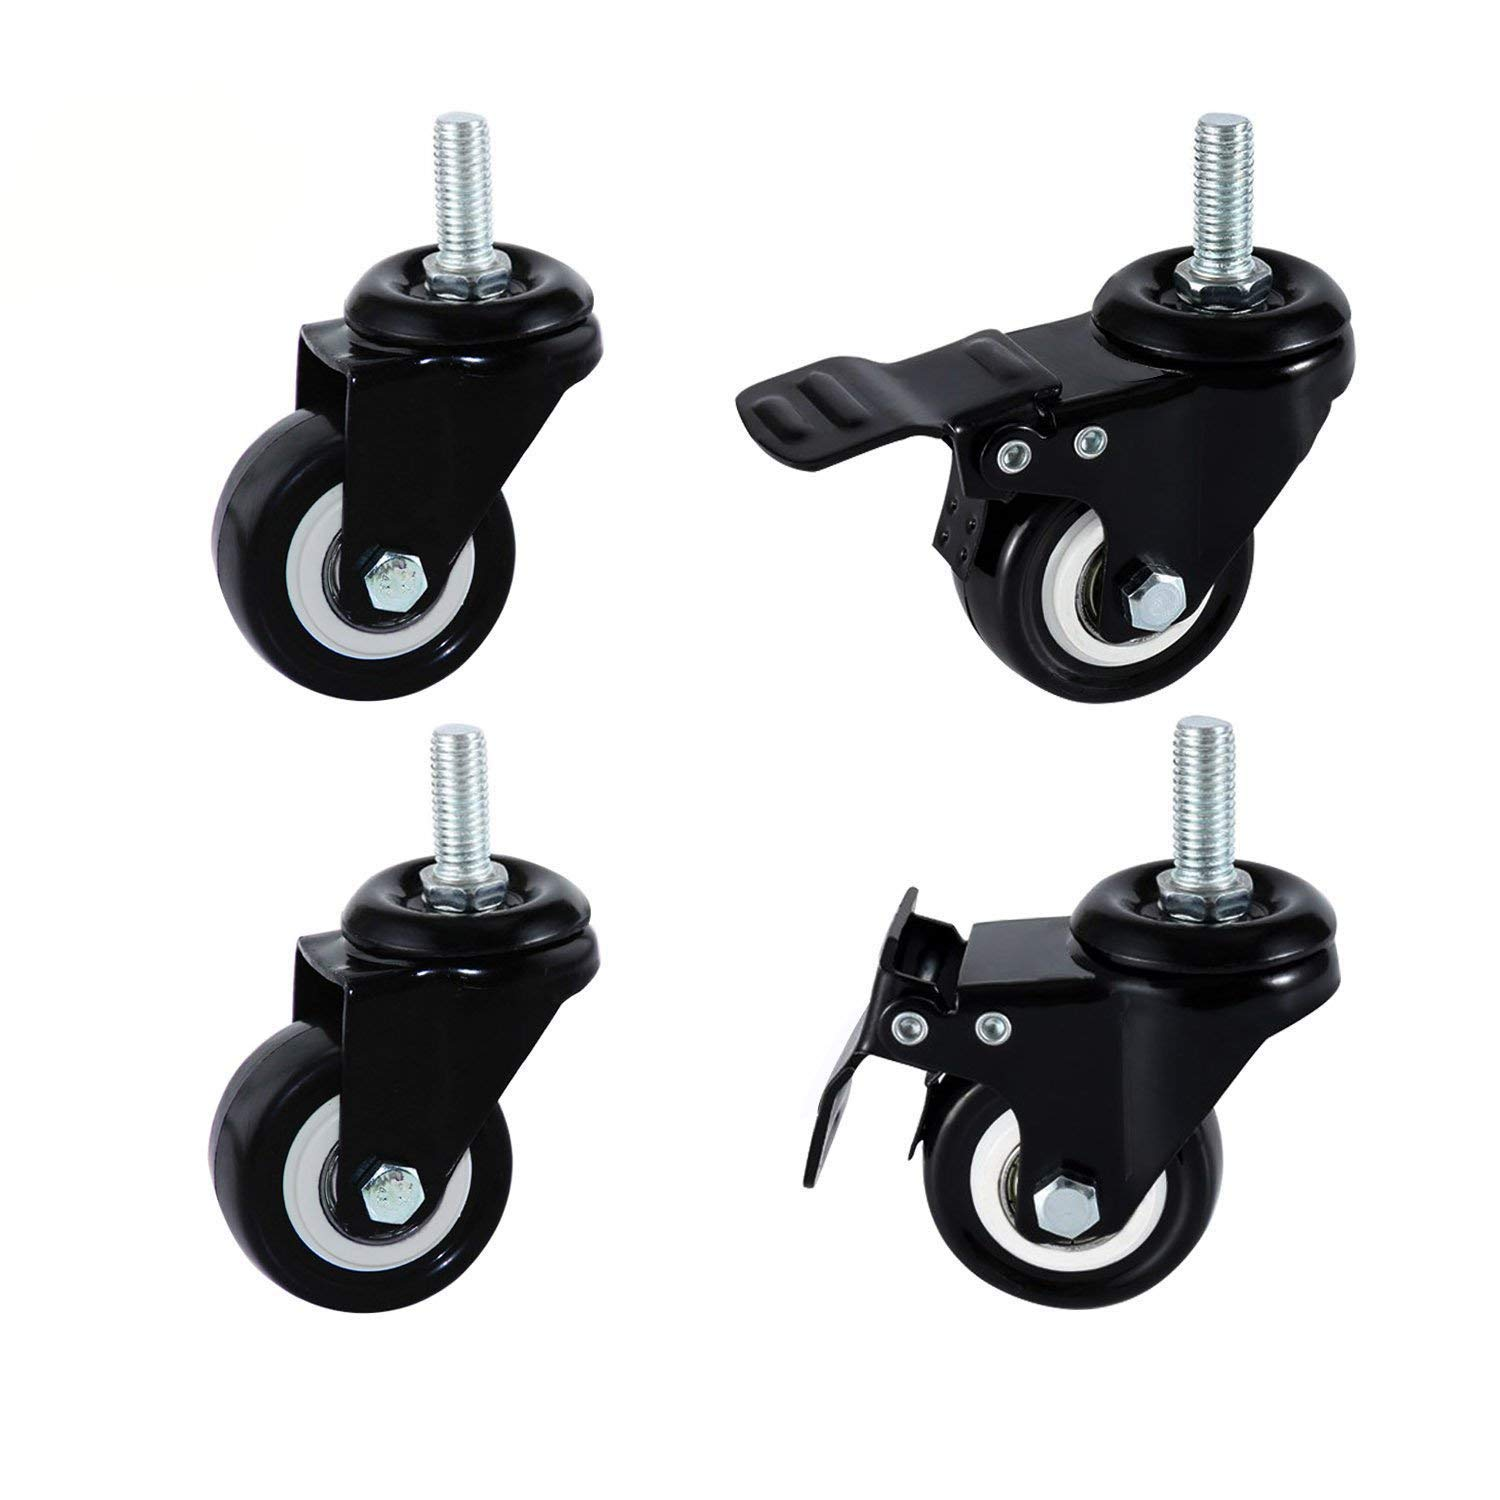 Cheap Furniture Casters Lowes Find Furniture Casters Lowes Deals On Line At Alibaba Com